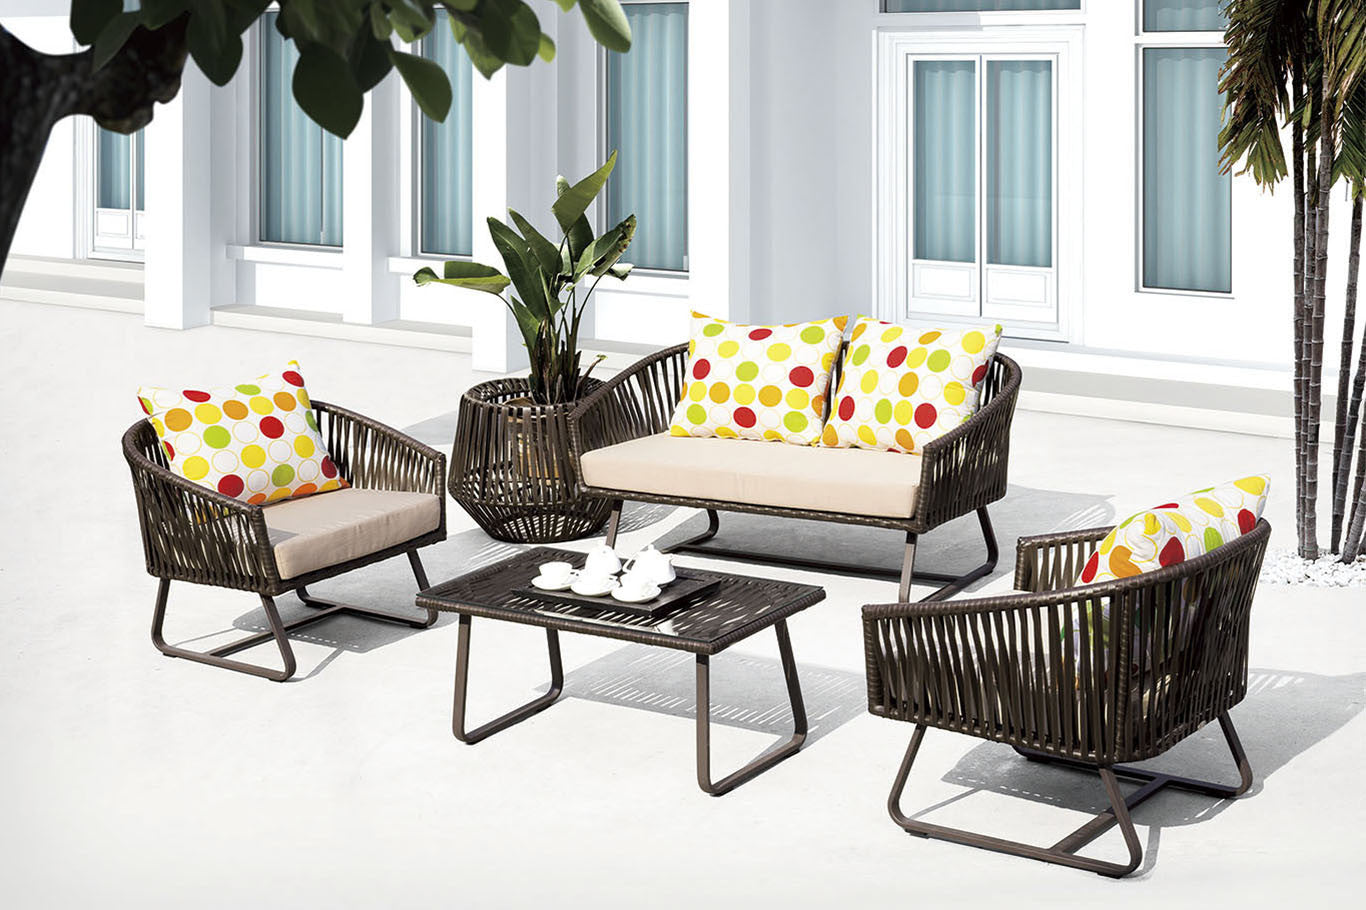 Outdoor Living Room Set Finest Poly Rattan Outdoor Living Room 4 Pc Set Furnicity